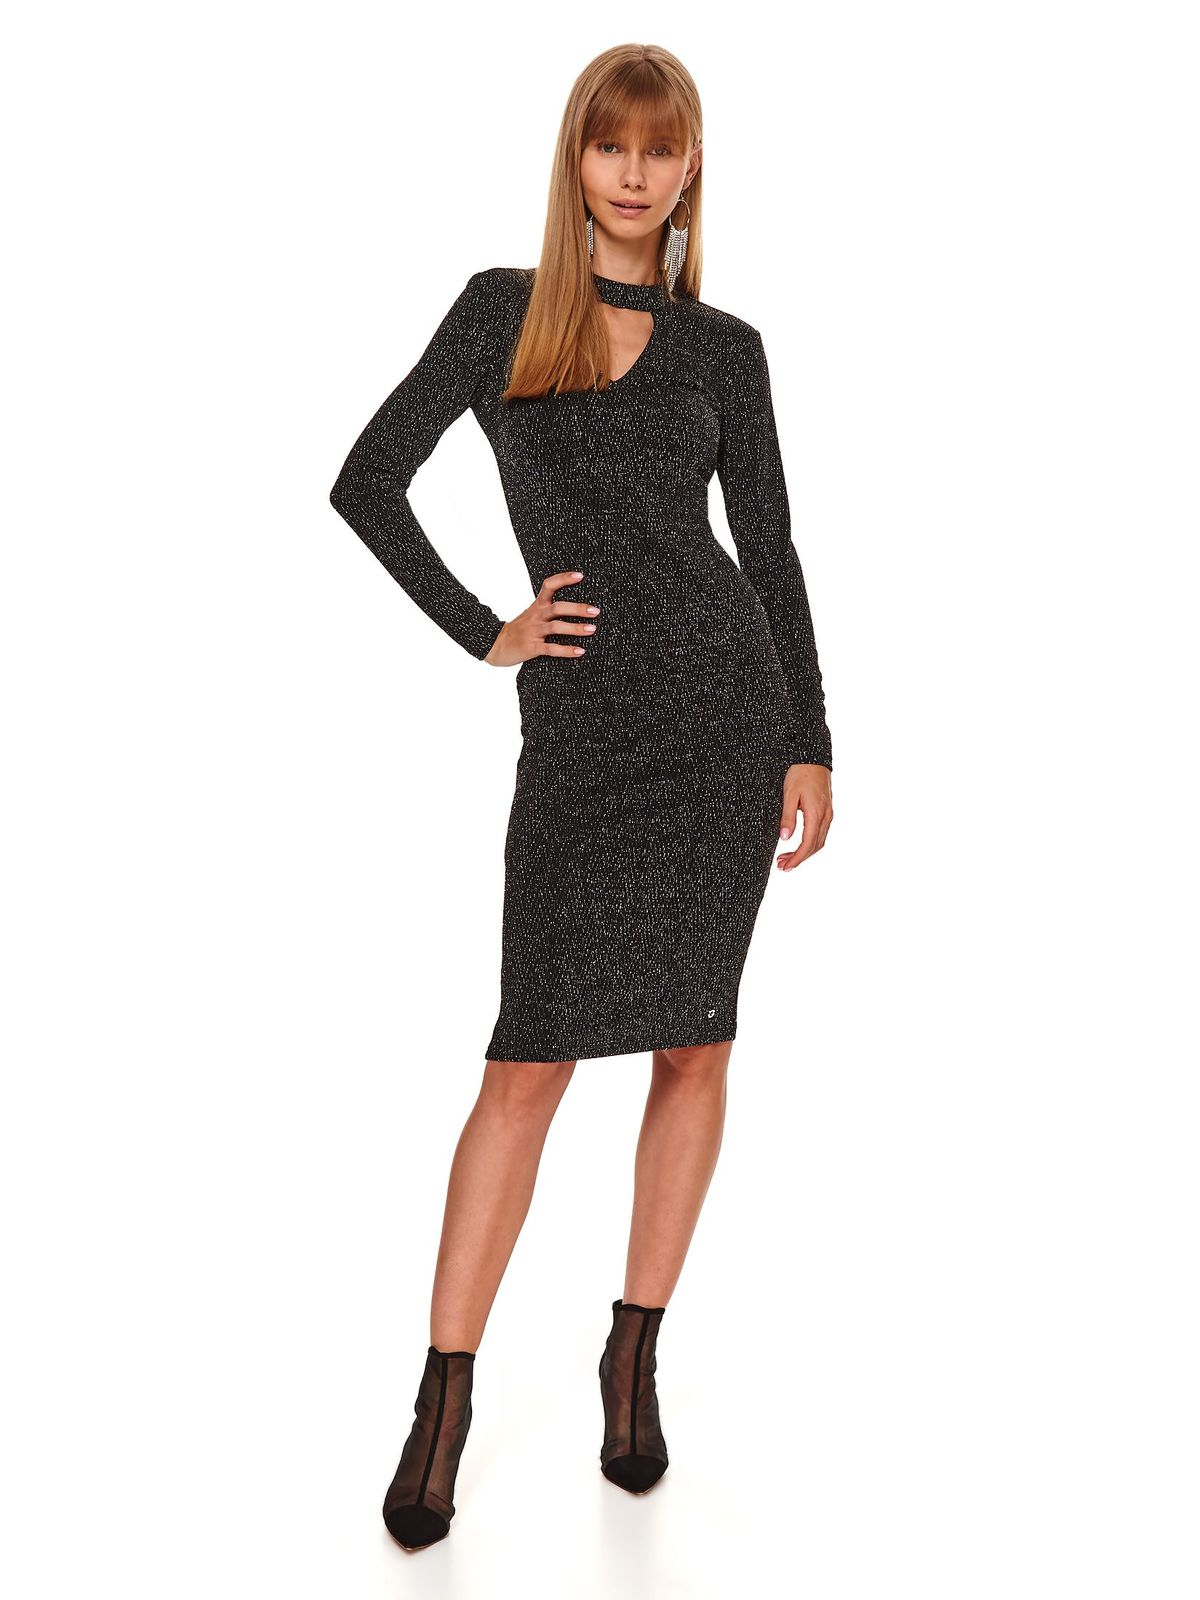 Black dress clubbing pencil cut-out bust design from elastic fabric